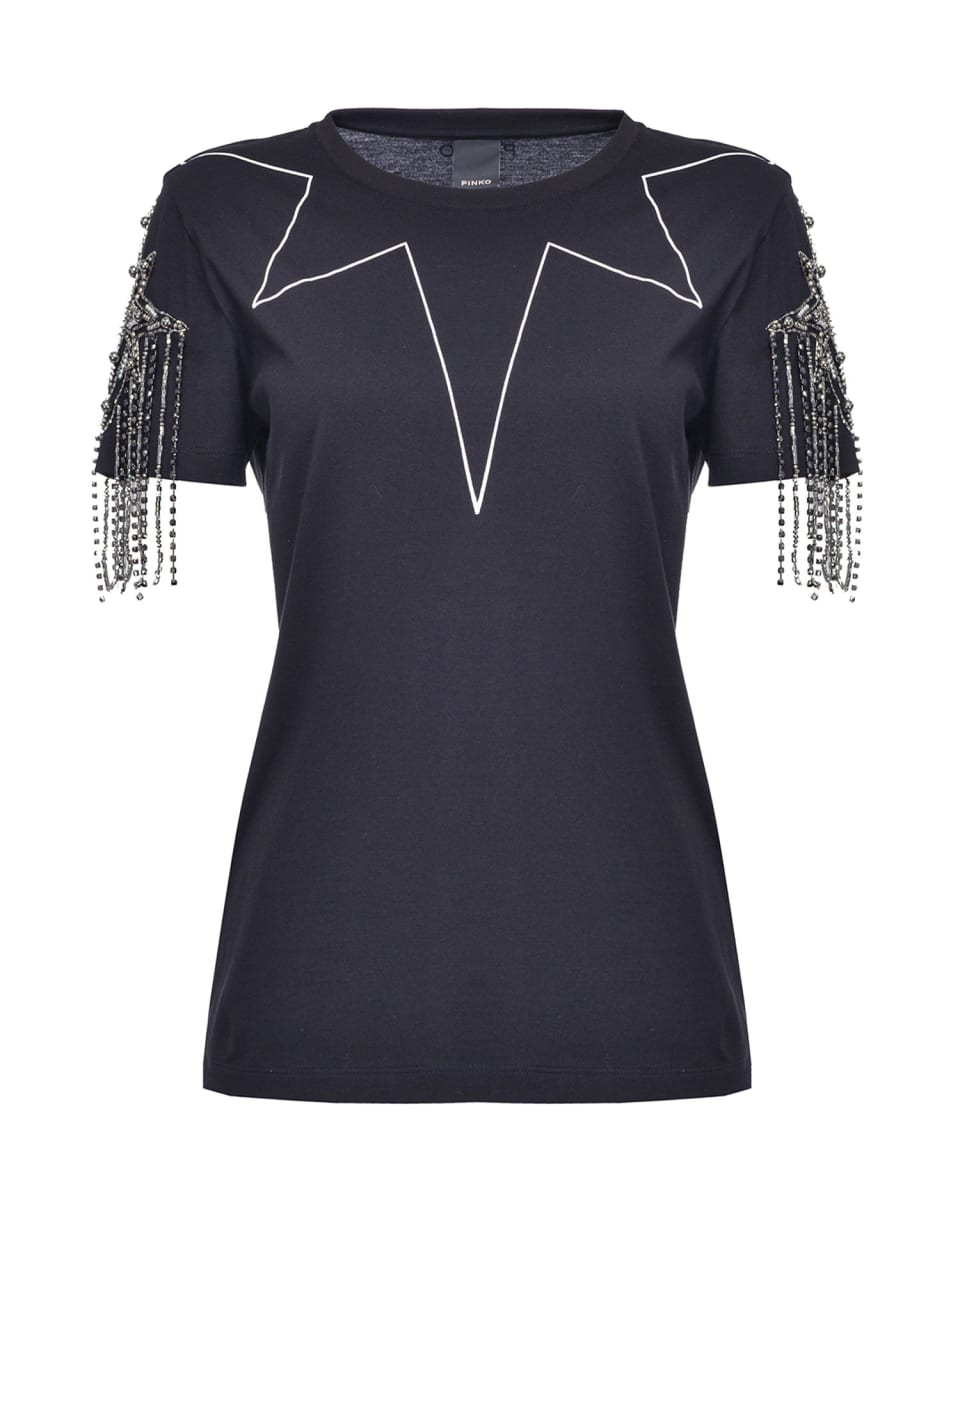 T-shirt with rhinestones on the sleeves